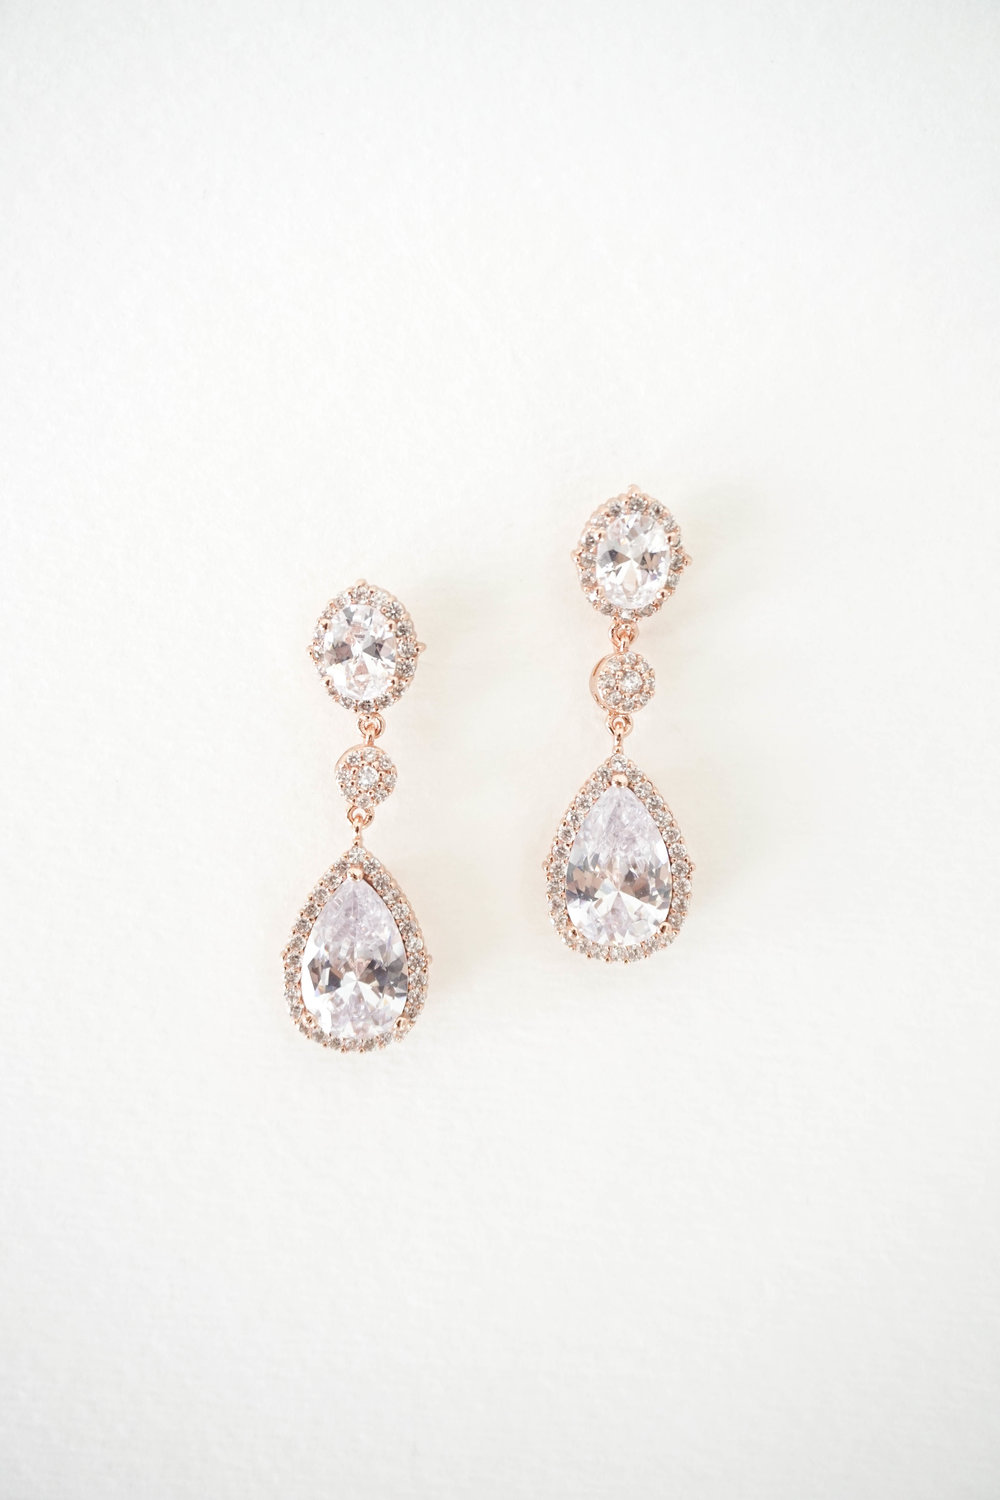 Bridal-Earrings-Photoshoot-with-Wink-of-Pink-Shop-Commercial-Photography-Bridal-Jewelry13.jpg